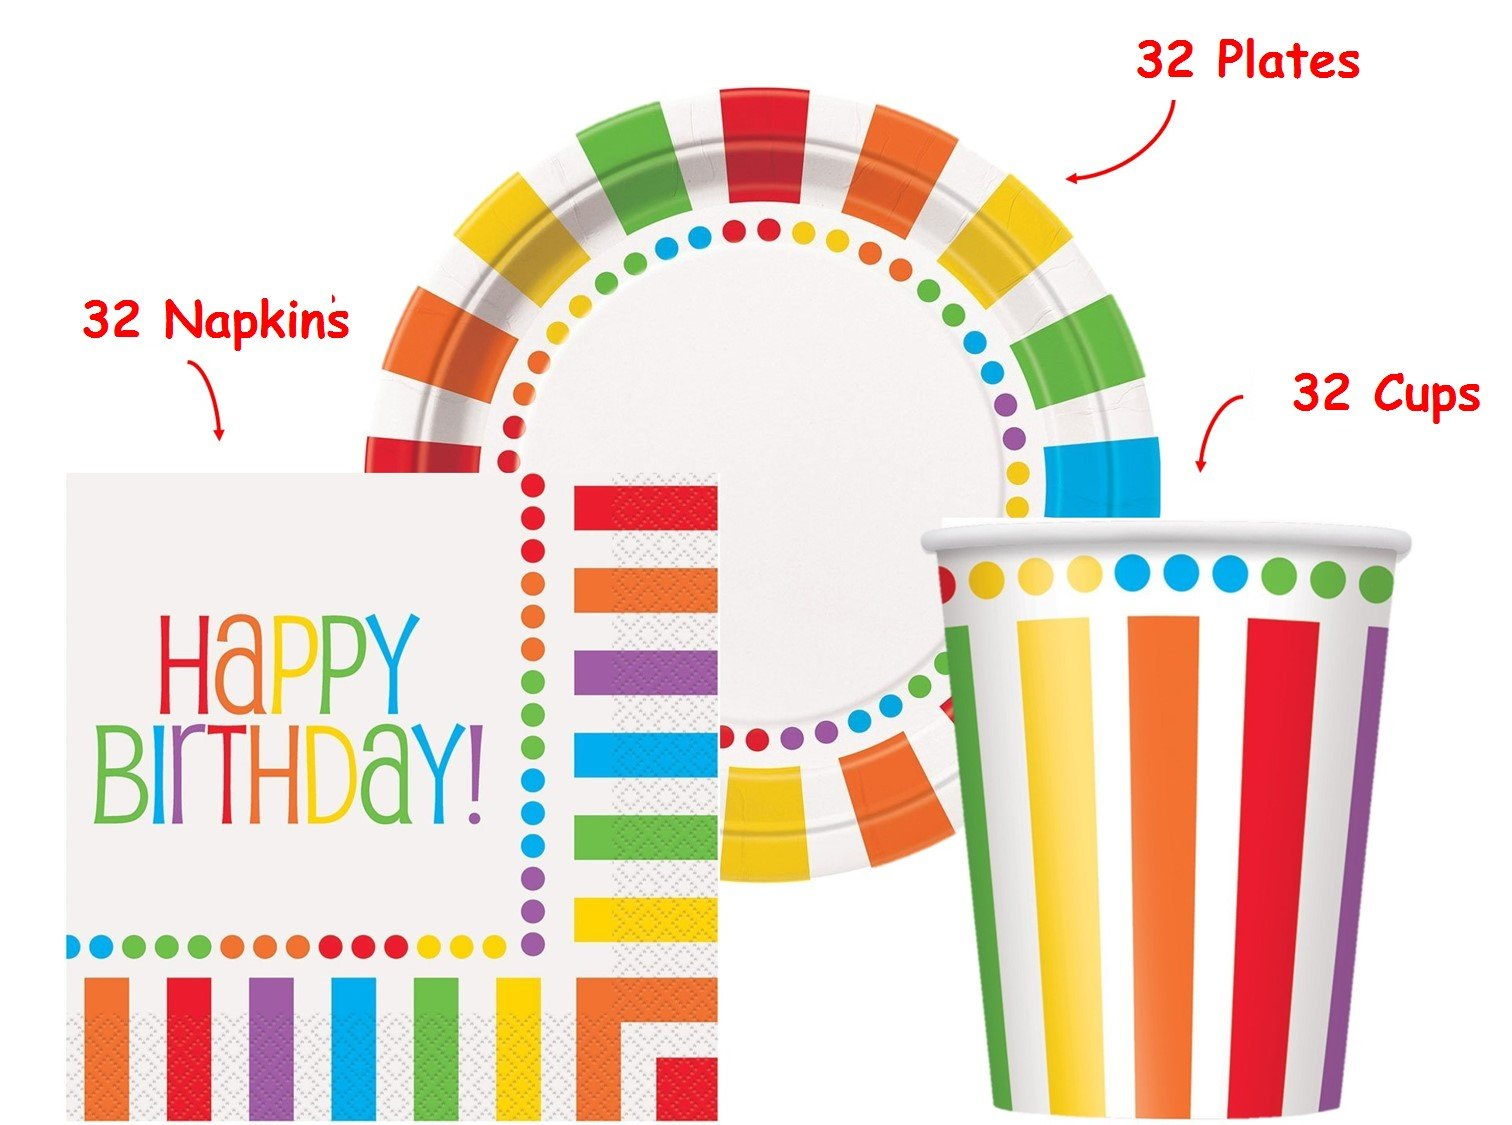 Kedudes Rainbow Birthday Party set Supplies for 32 guests - 32 Plates 9'', 32 Cups 9'' and 32 Napkins by kedudes